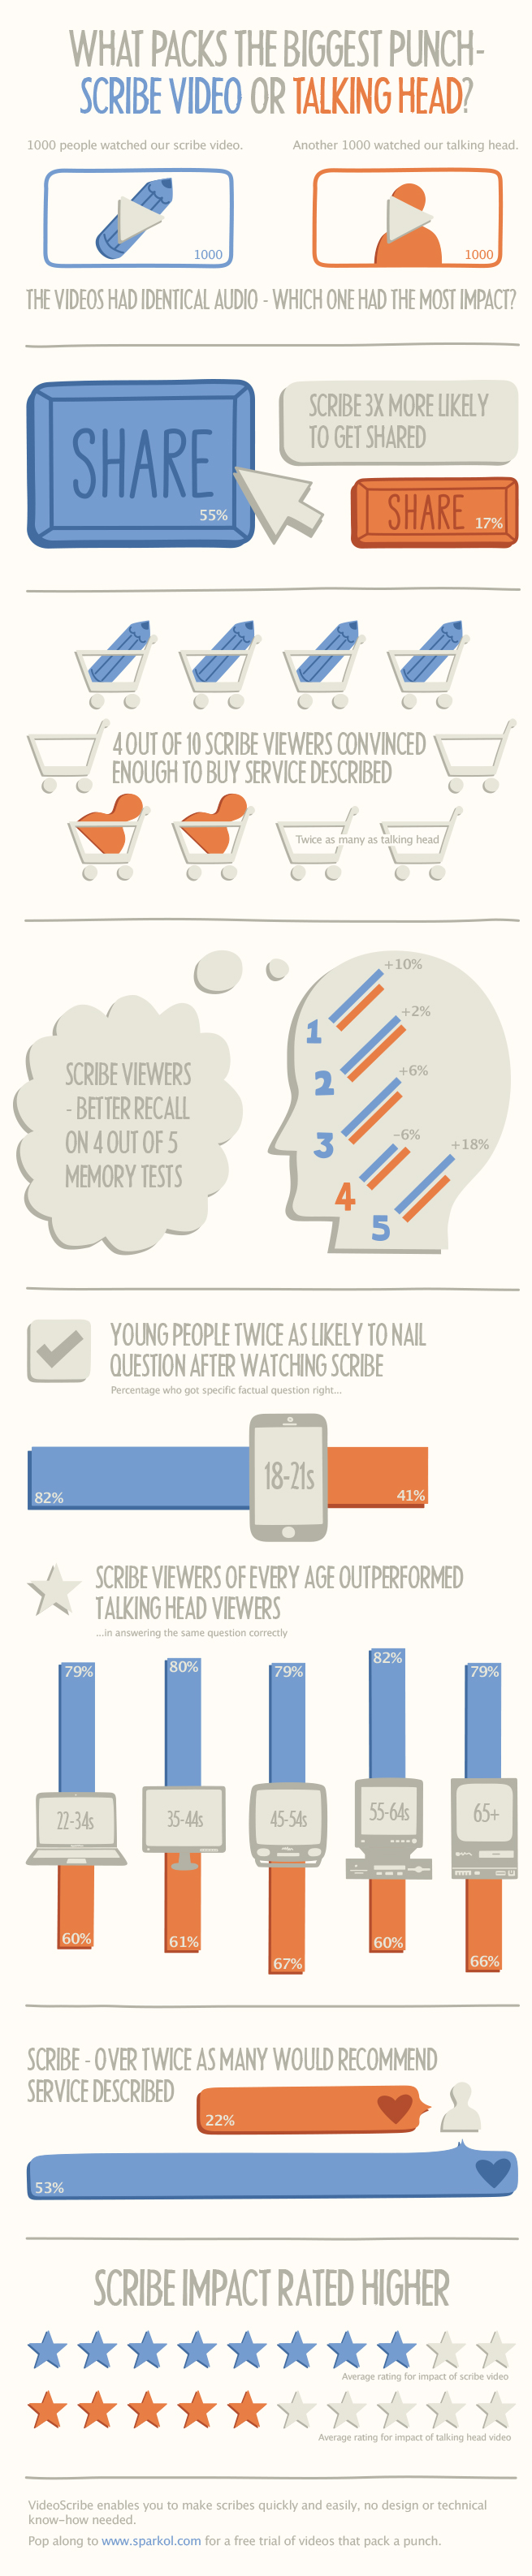 Scribe-video-AB-test-infographic